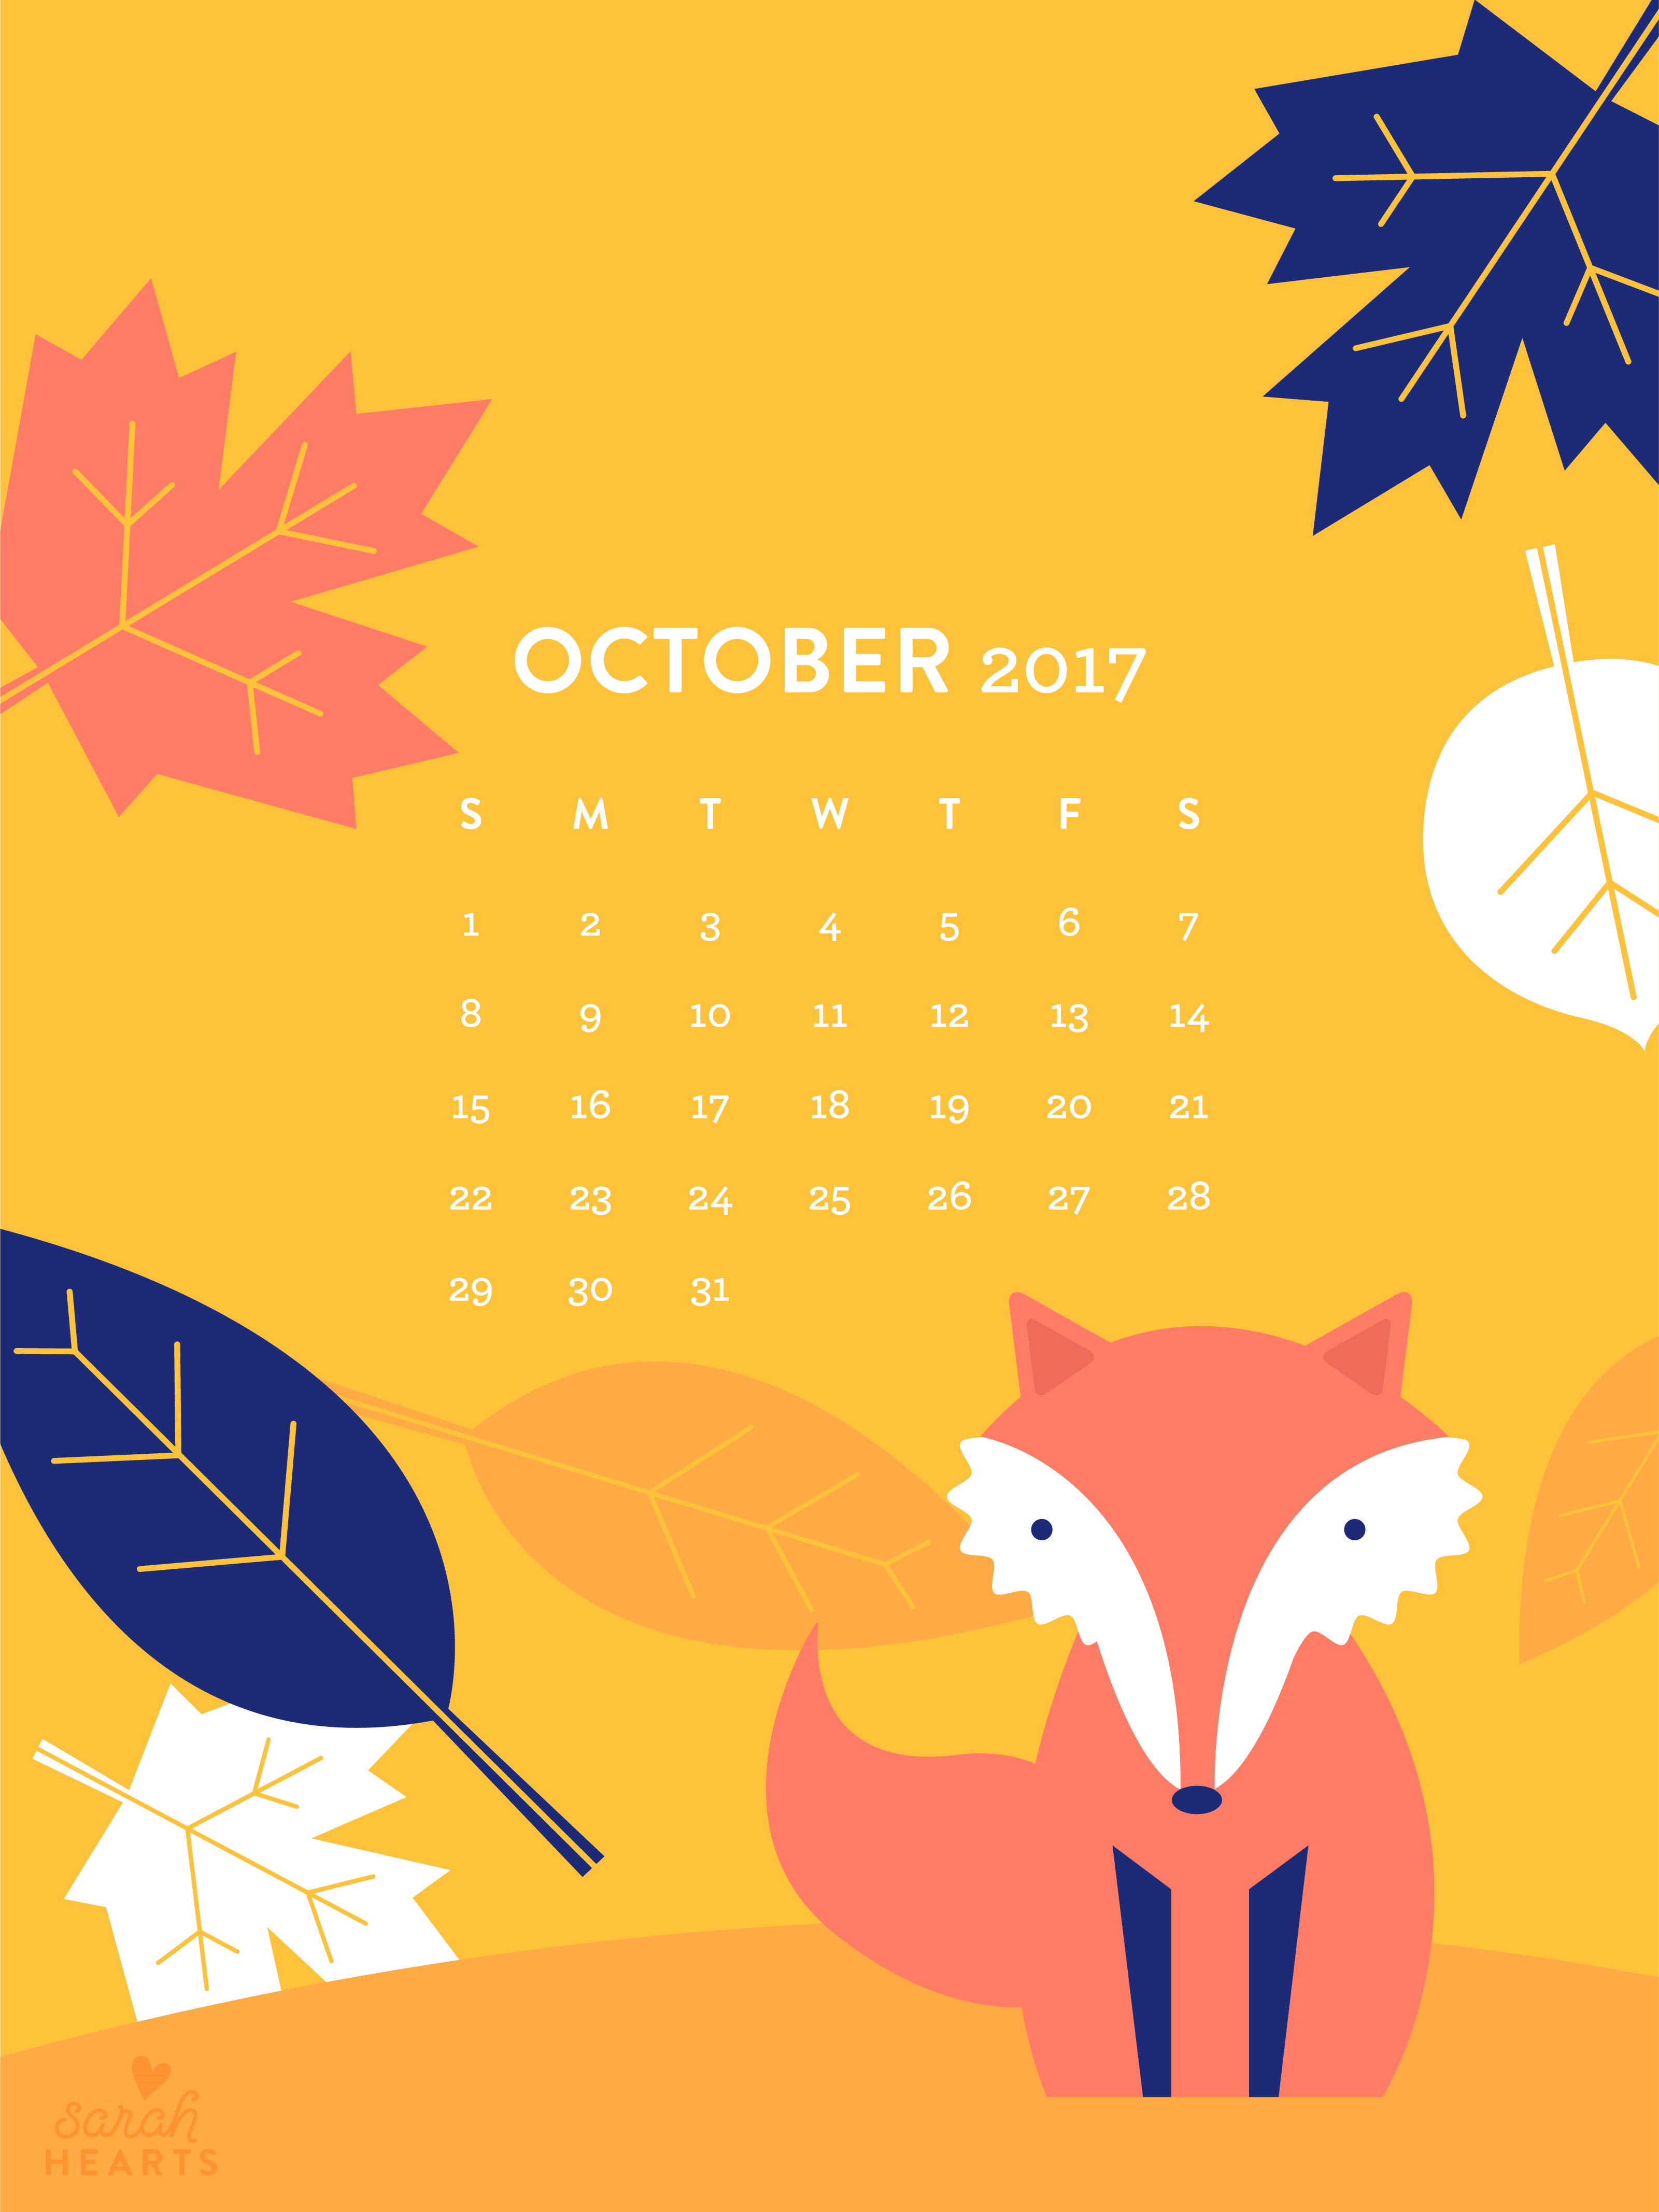 Fall Vector Wallpaper Fall Leaf And Fox October 2017 Calendar Wallpaper Sarah